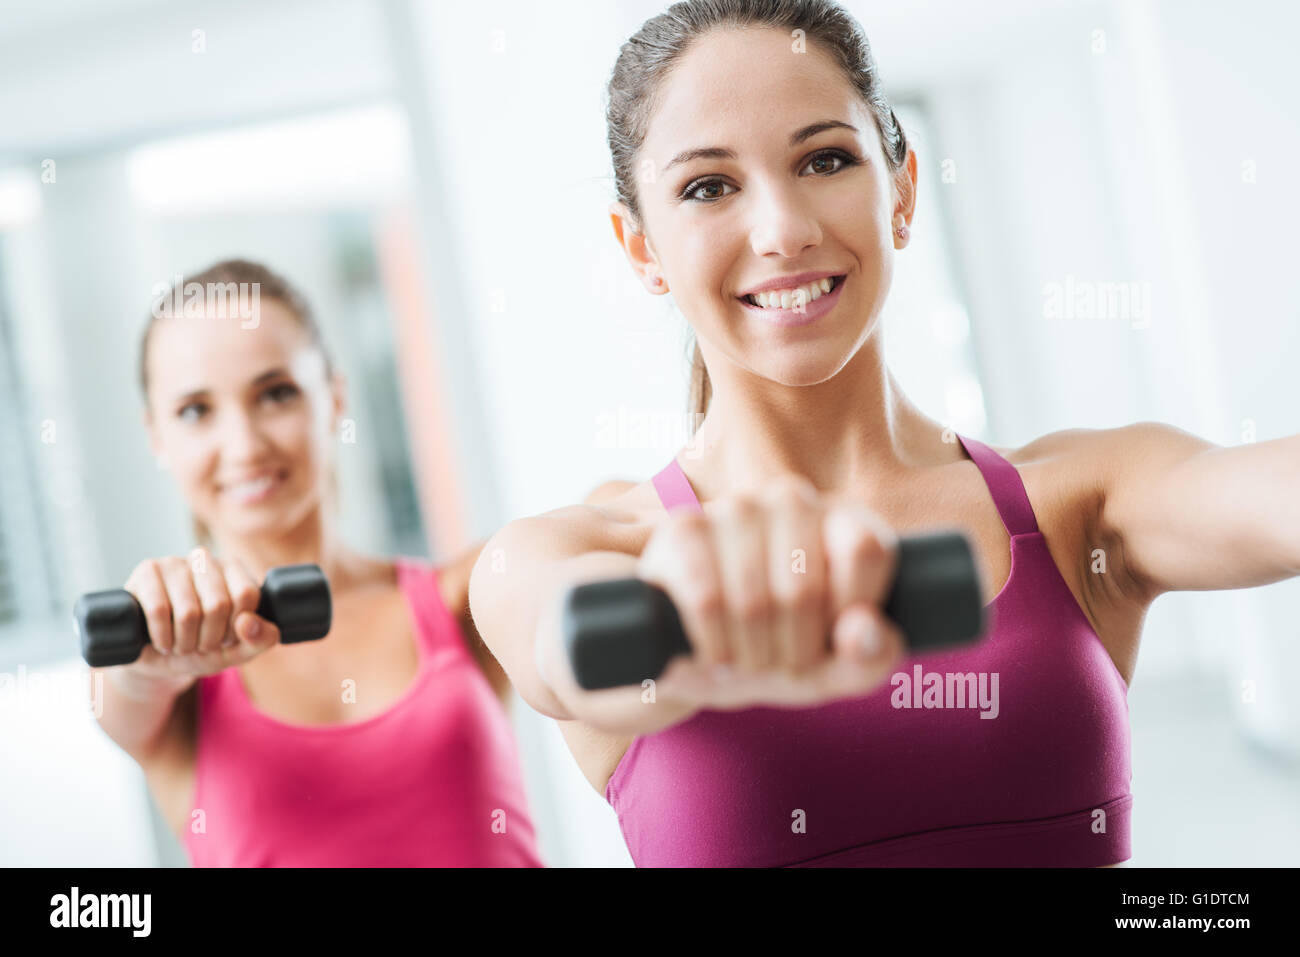 Teen sporty girls at gym exercising and weightlifting using dumbbells, body care and training concept - Stock Image